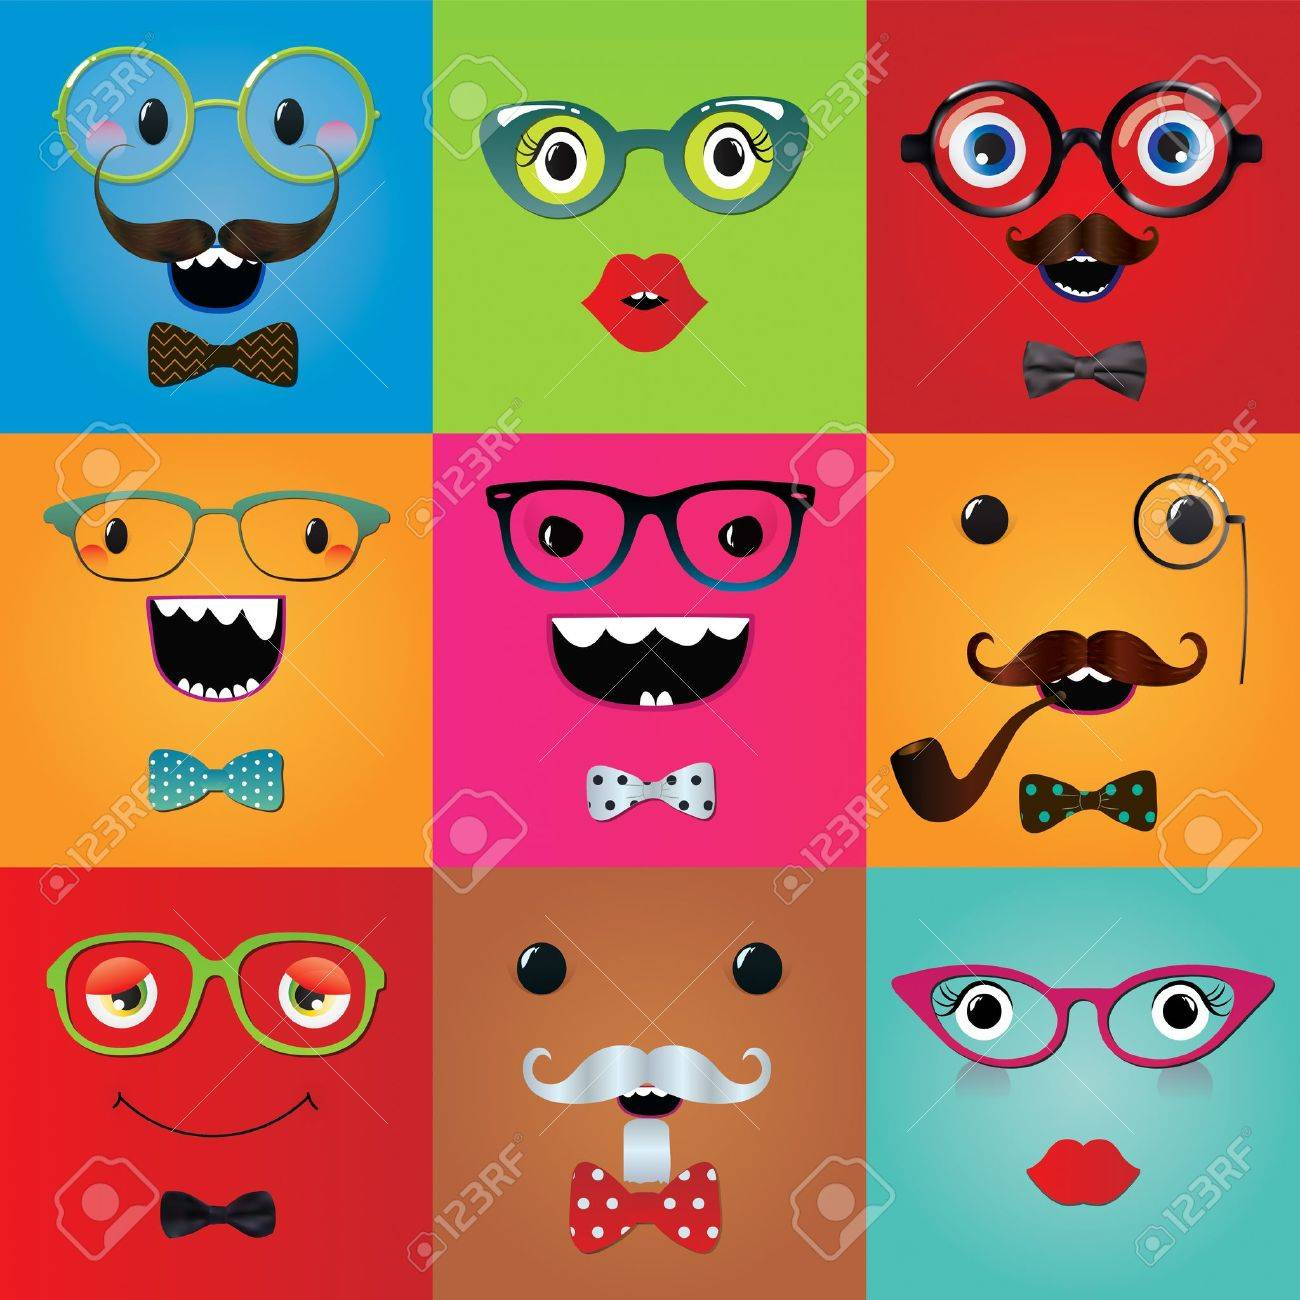 Set of funny hipster monster eyes and face expressions. Vector illustration. Party design elements and masks. Stock Vector - 25121886